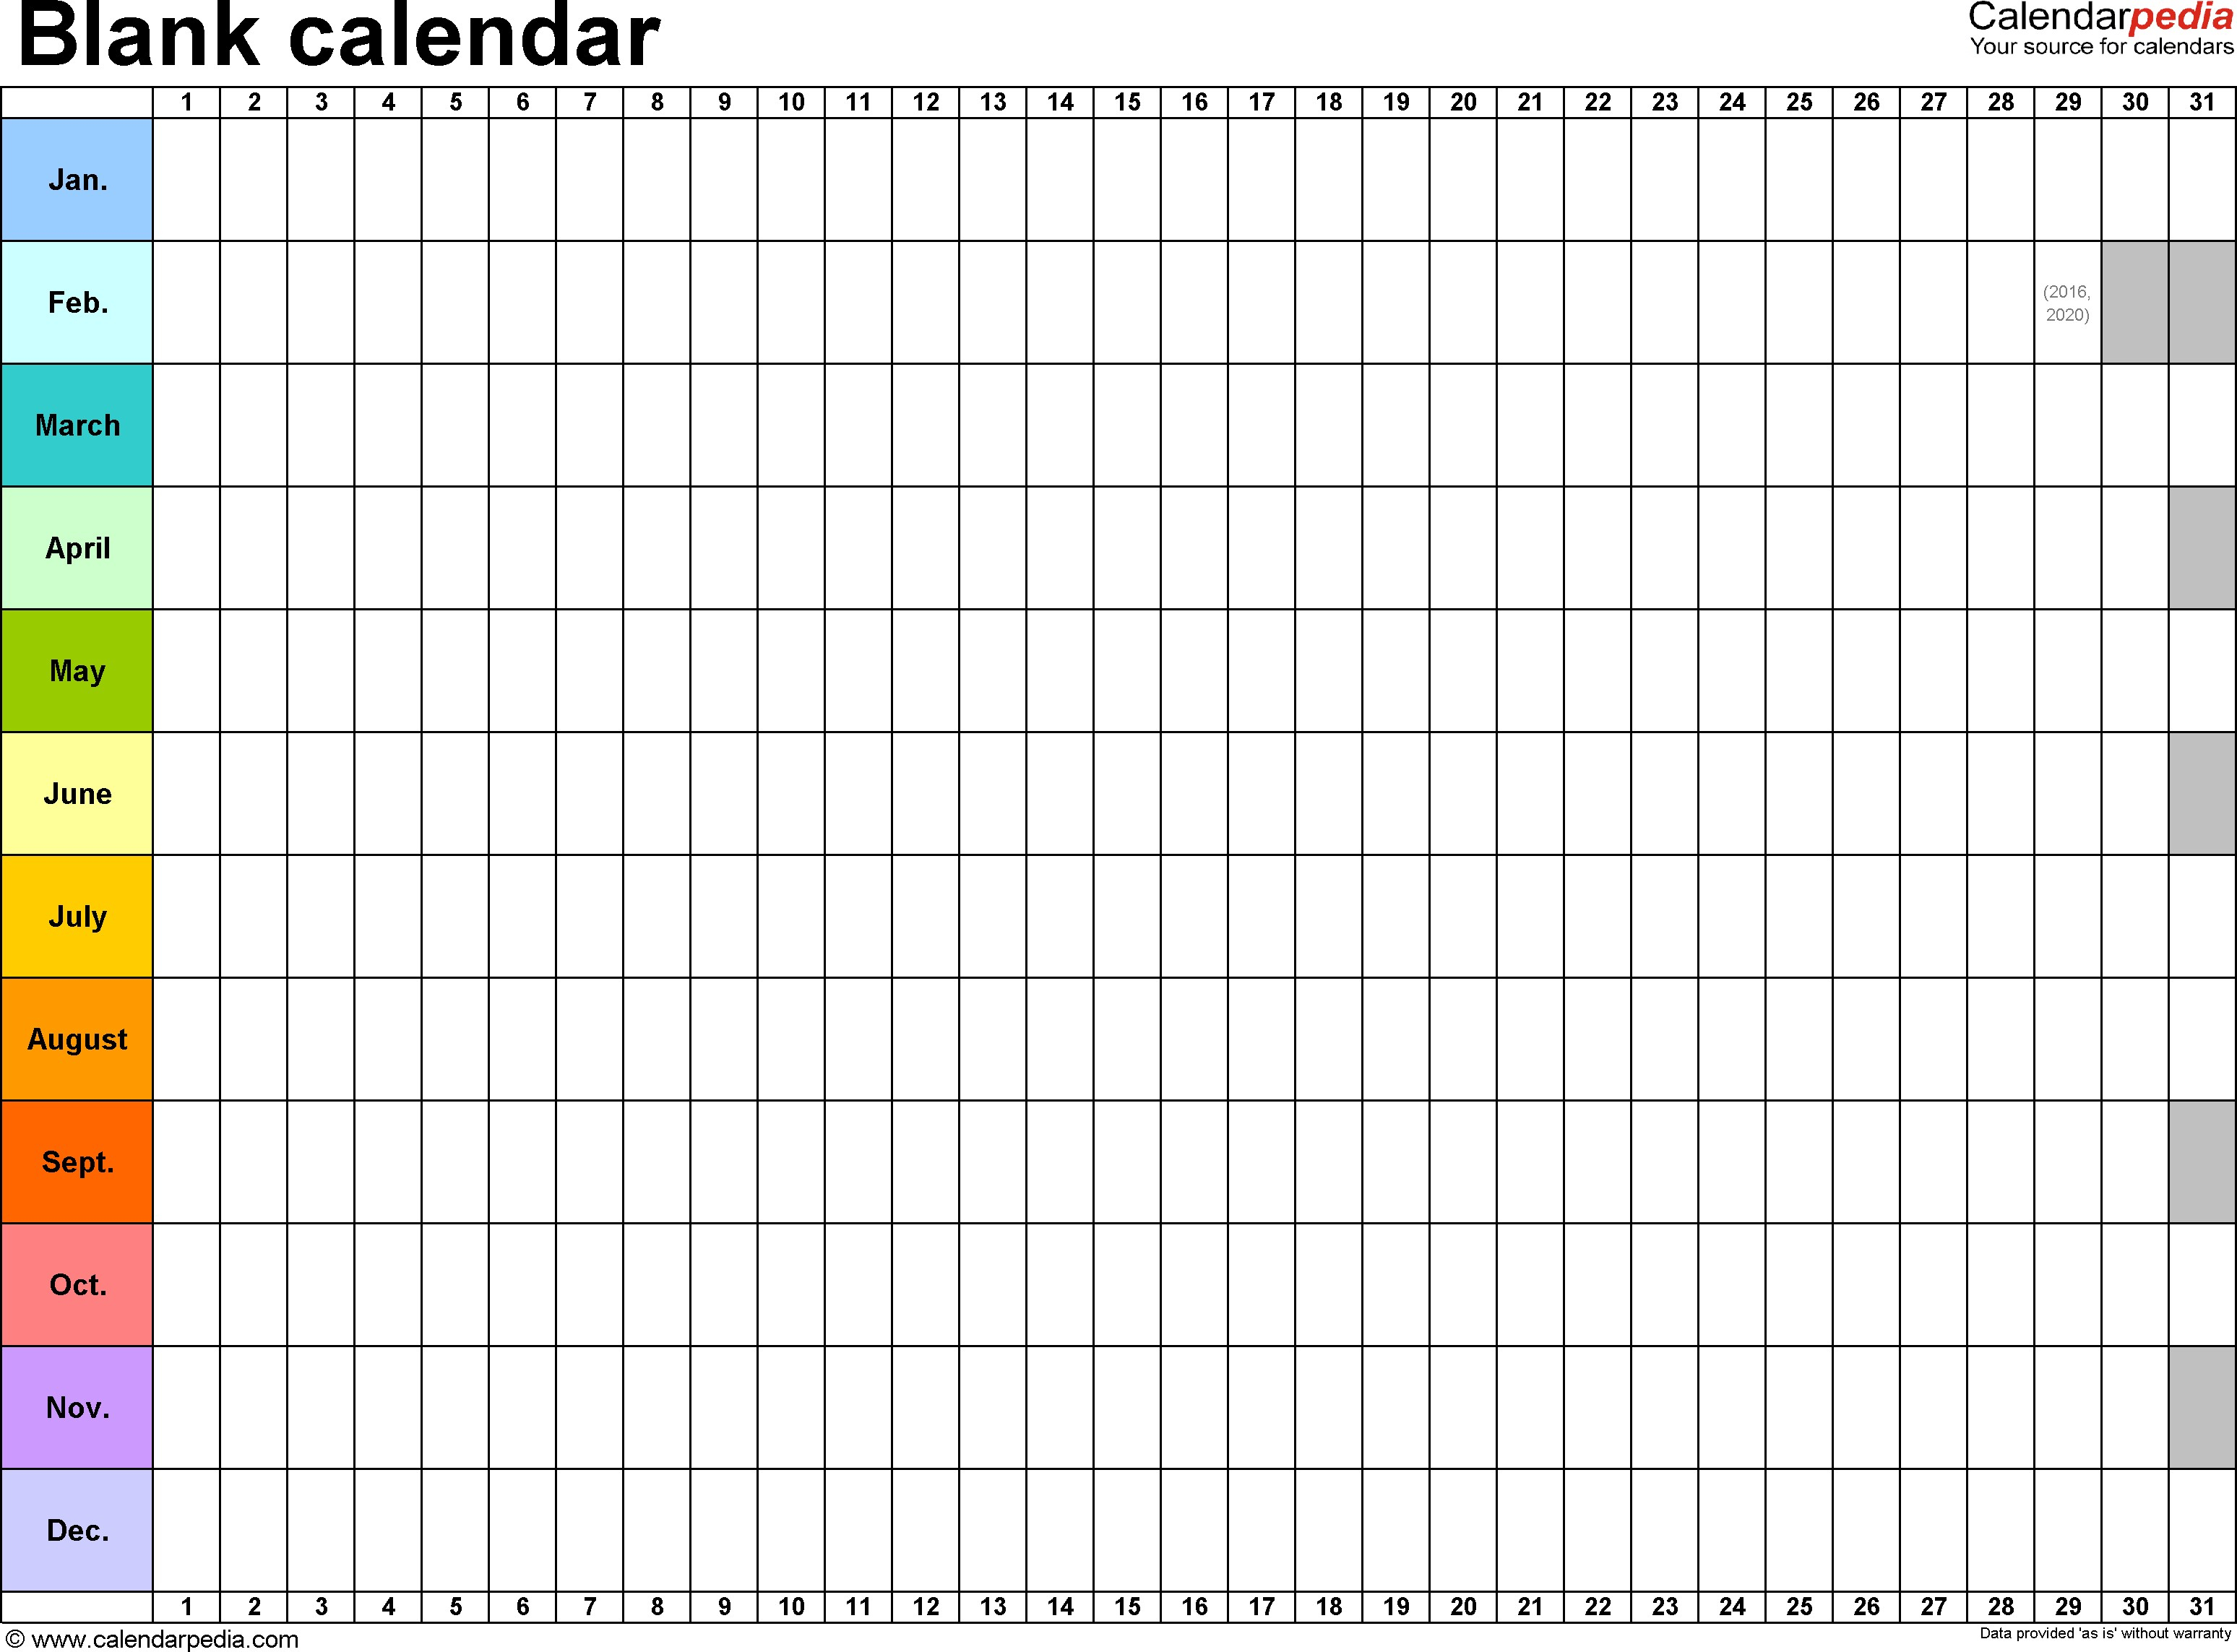 30 Day Calendar Template Word | Thekpark-Hadong intended for Blank 30 Day Month Calendar